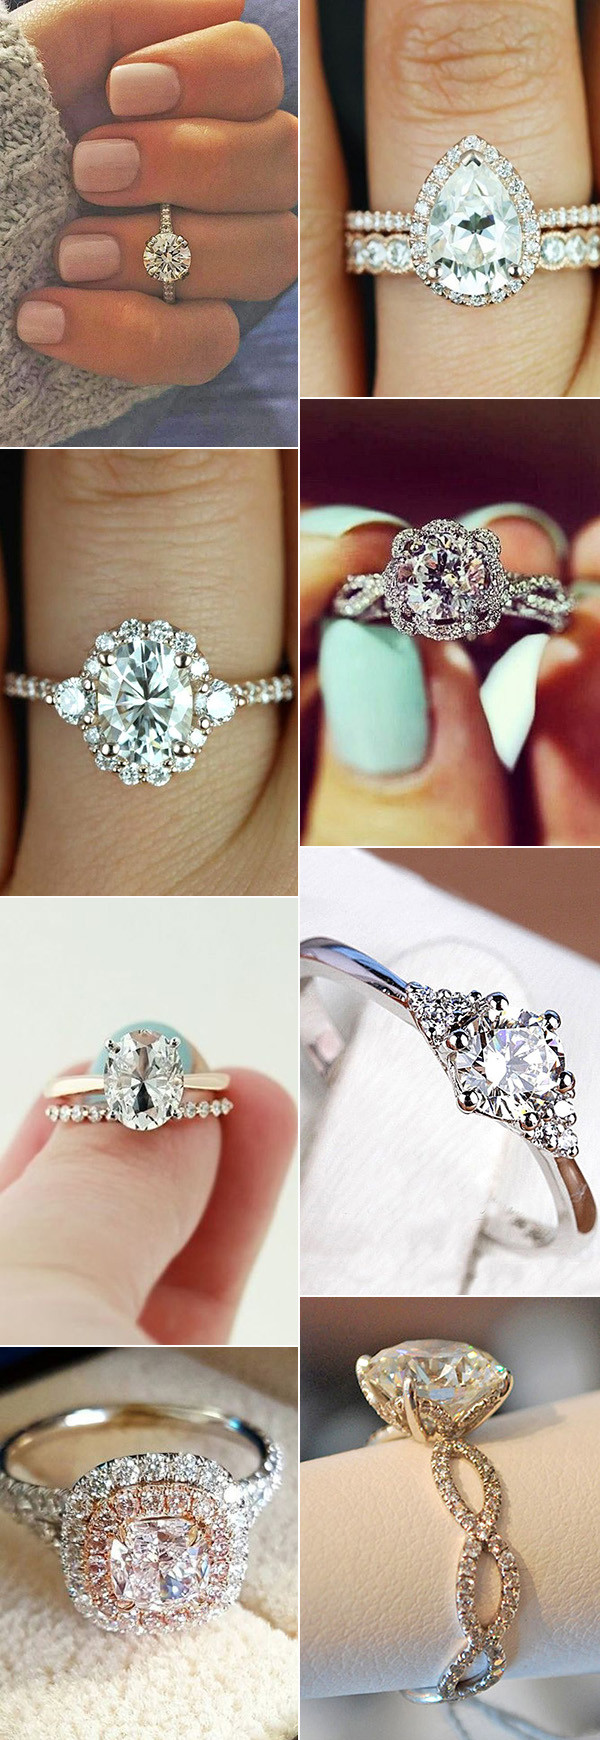 2017 trending amazing wedding engagement rings ideas